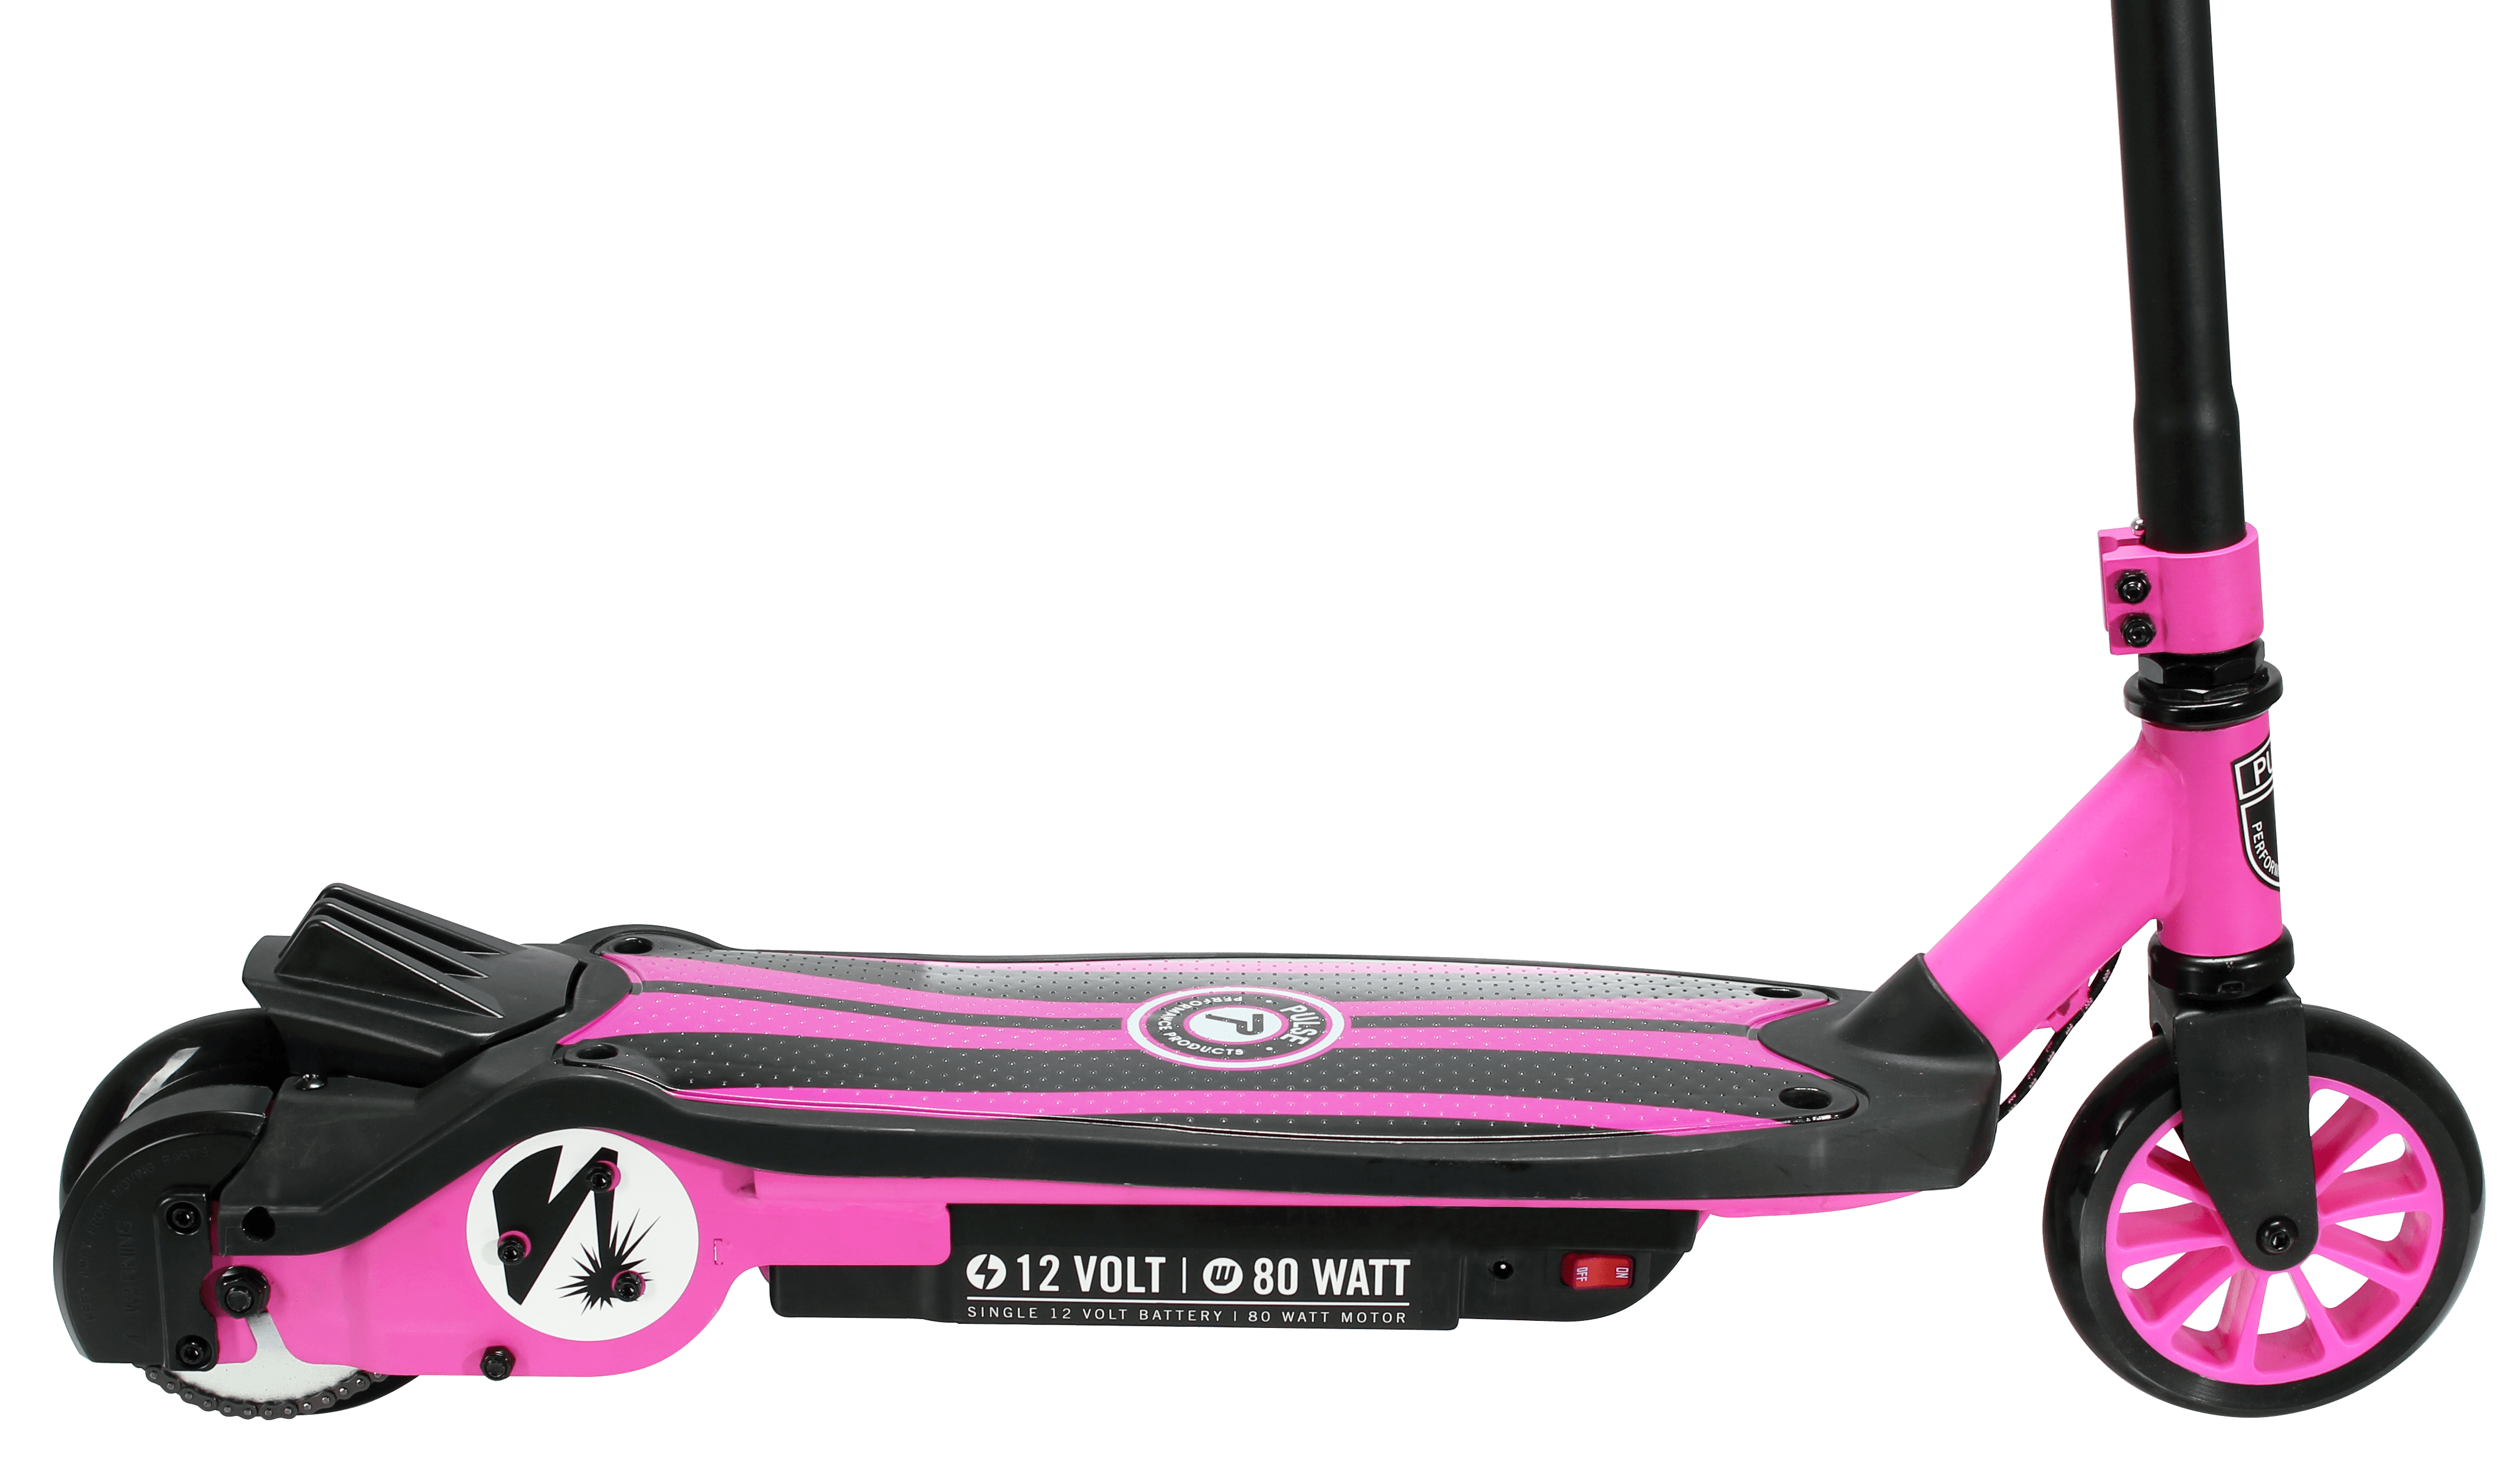 Walmart Toys Scooters For Boys : Pulse performance products revster electric scooter black